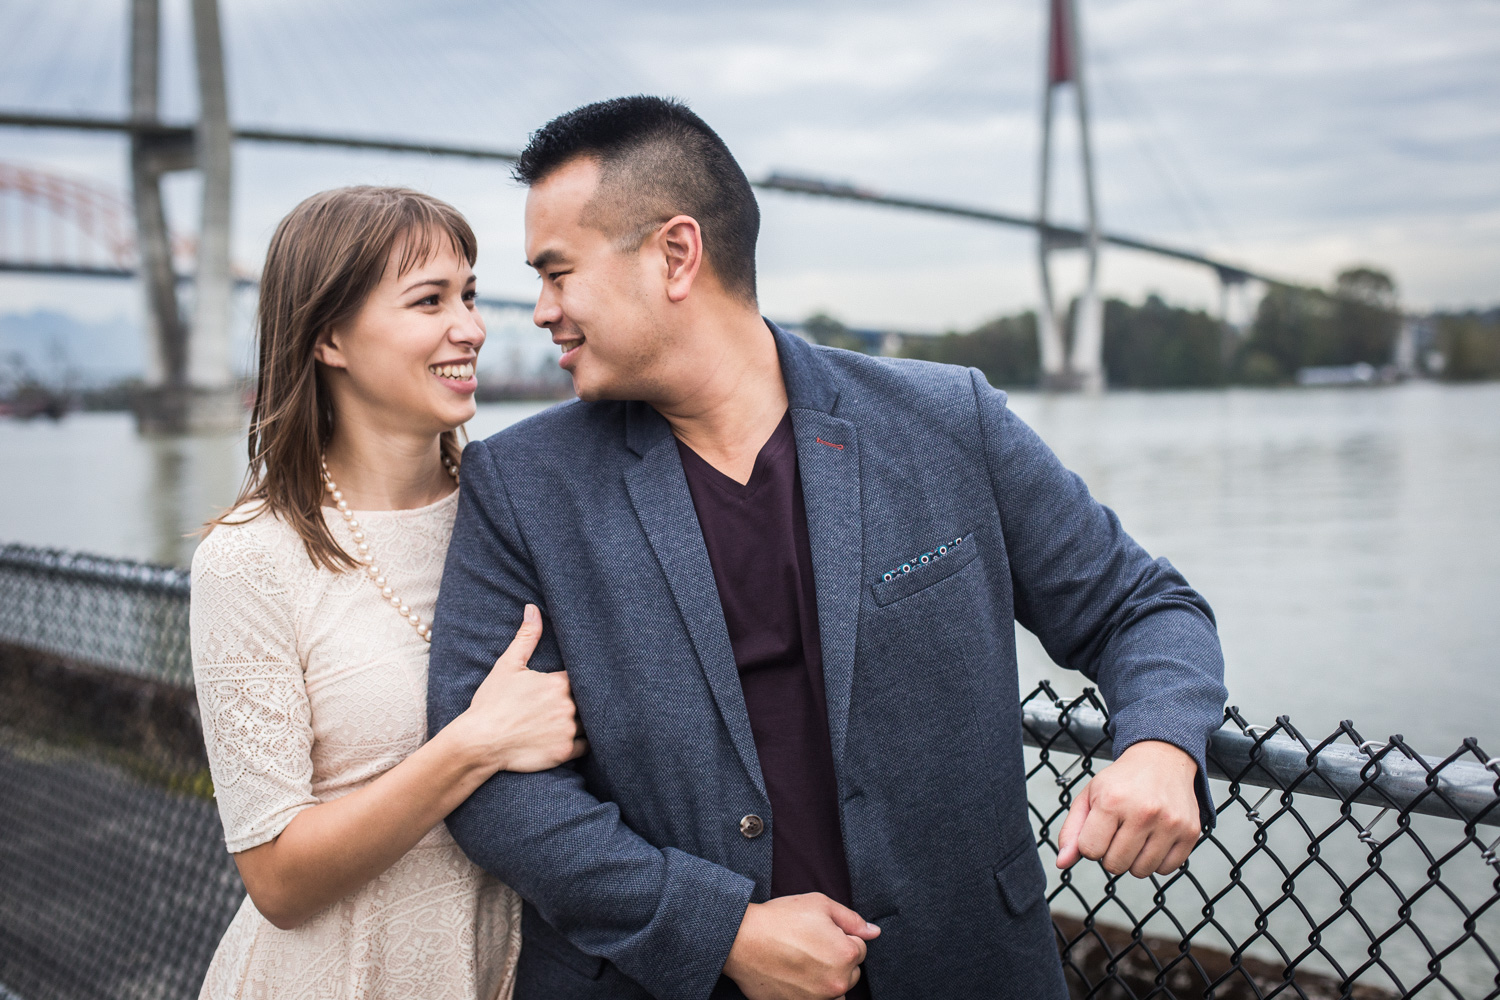 NEW WESTMINSTER QUAY ENGAGEMENT – TONY & RACHEL